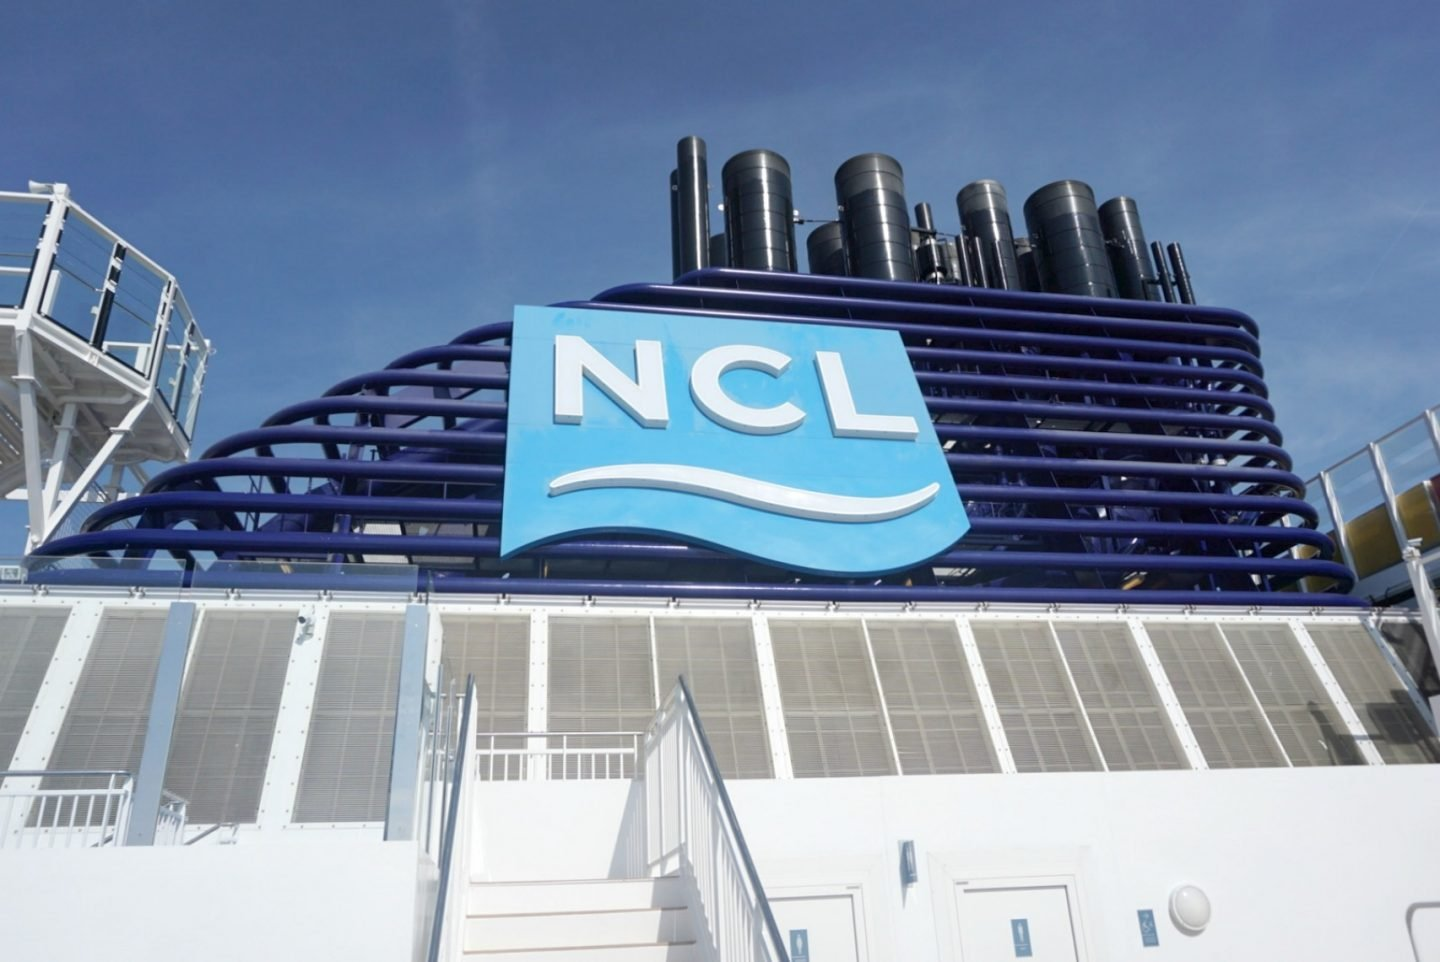 Norwegian Bliss www.extraordinarychaos.com